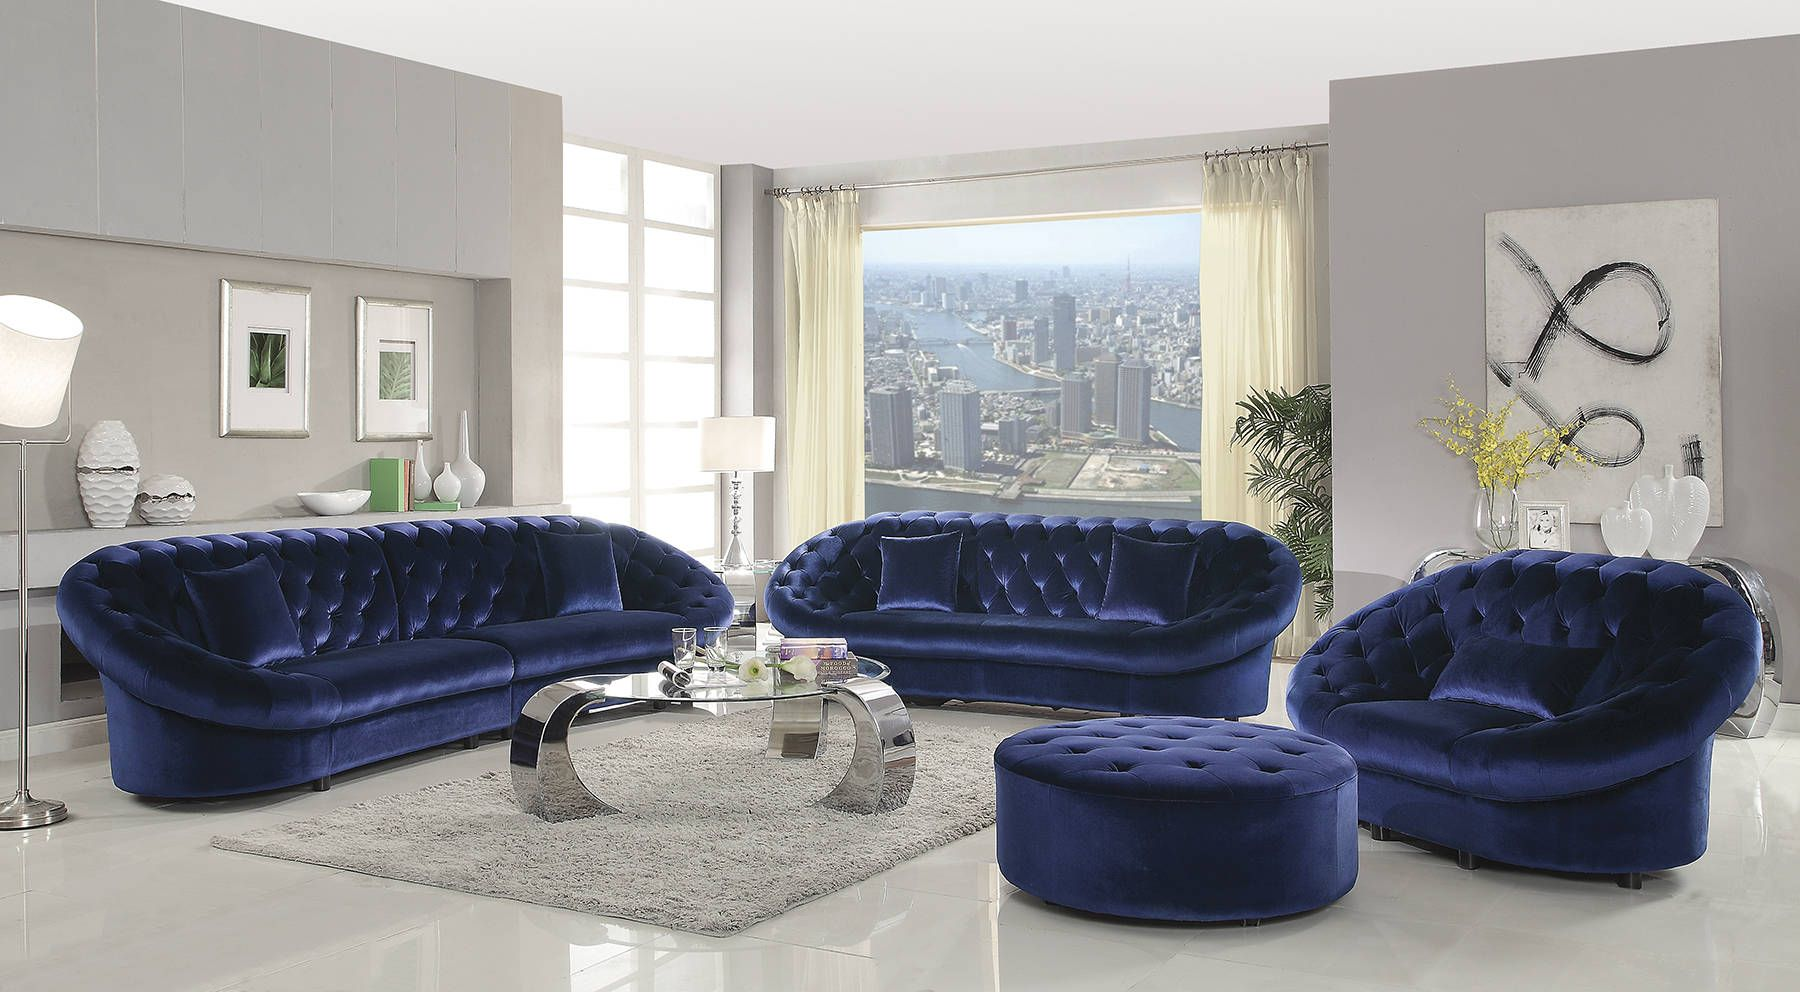 Pin On The Classy Home Furniture Mall #royal #blue #living #room #furniture